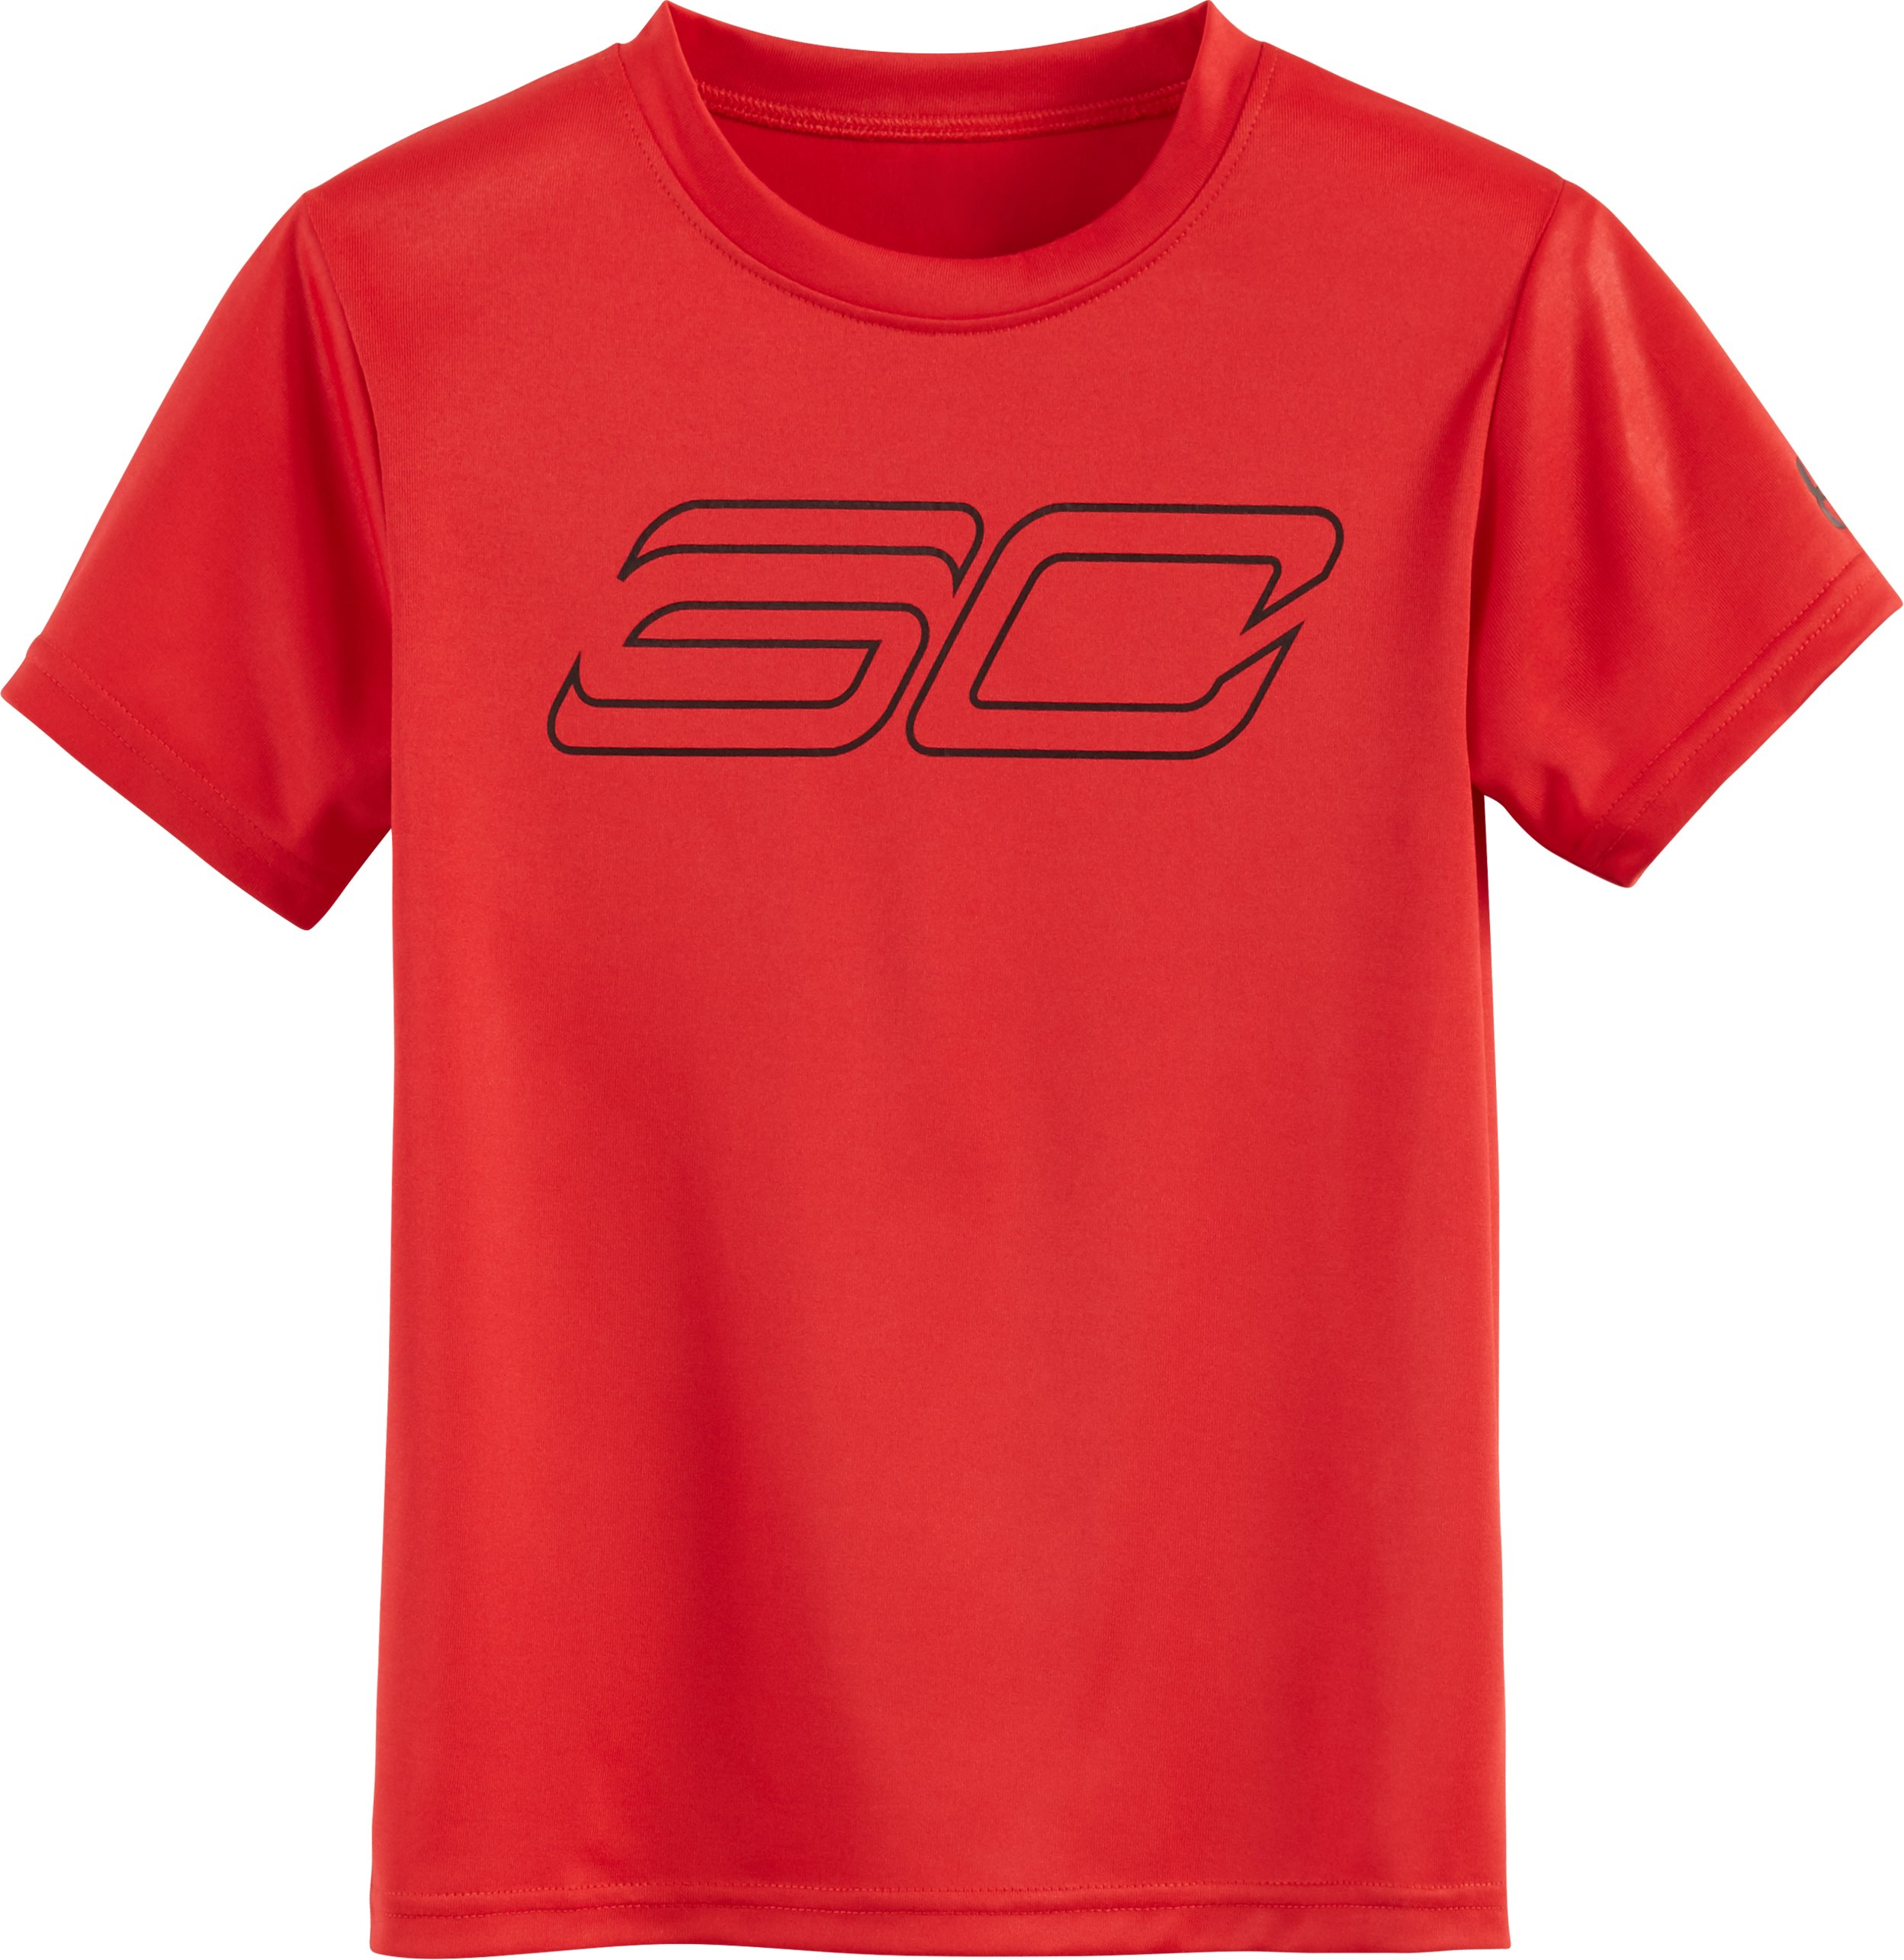 Boys' Pre-School SC30 Logo Short Sleeve Shirt, Red, zoomed image